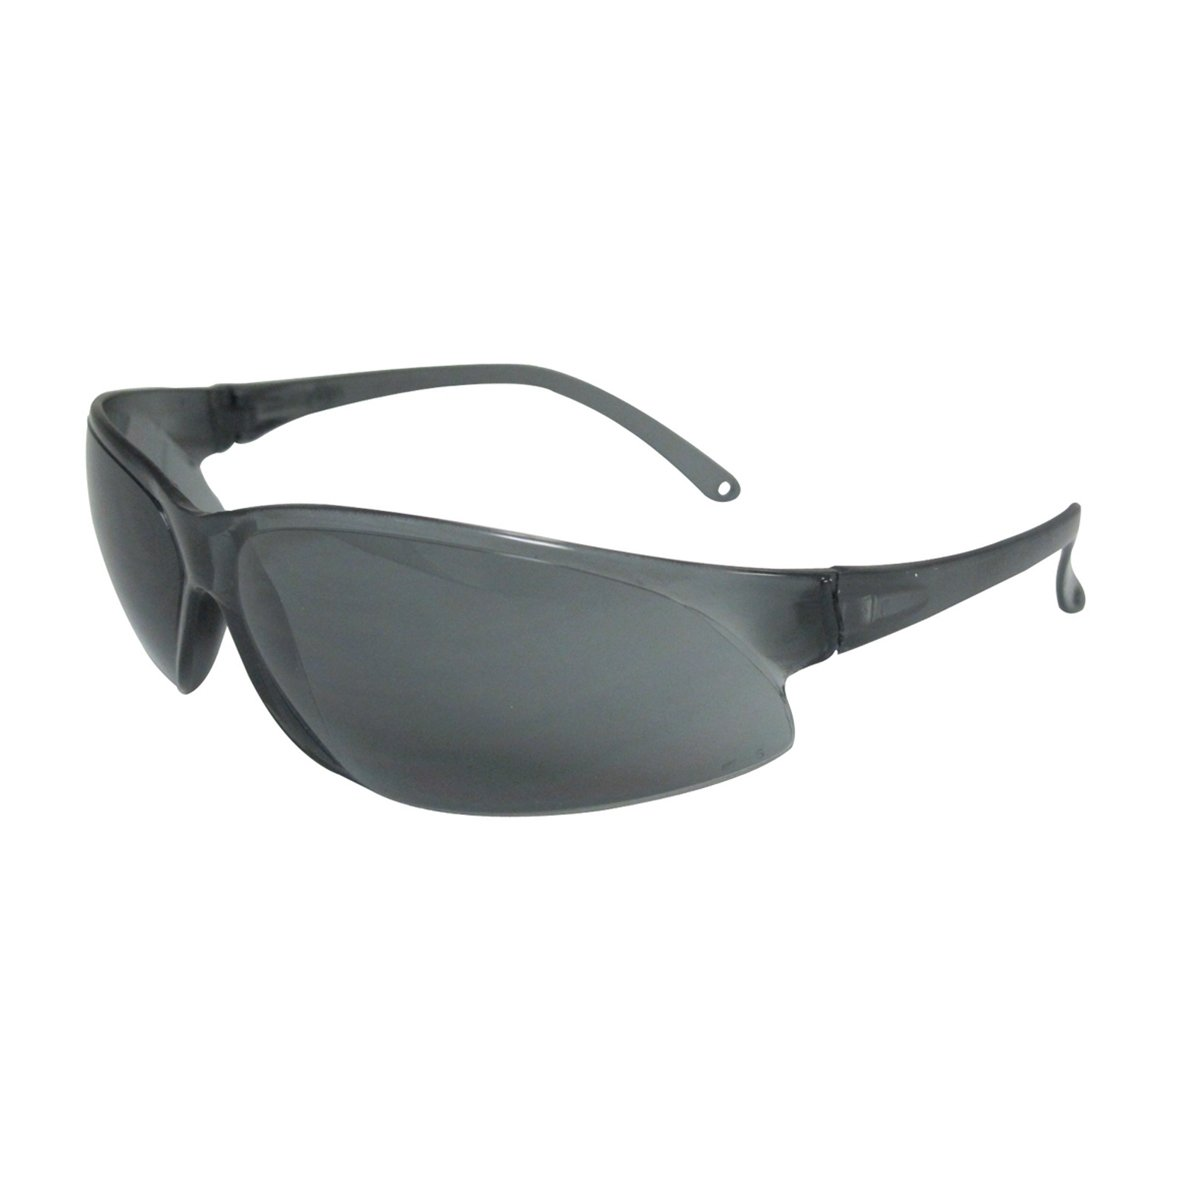 One Size Gray Plastic ERB Safety 16516 Superbs Safety Glasses Frame with Anti-Fog Lens